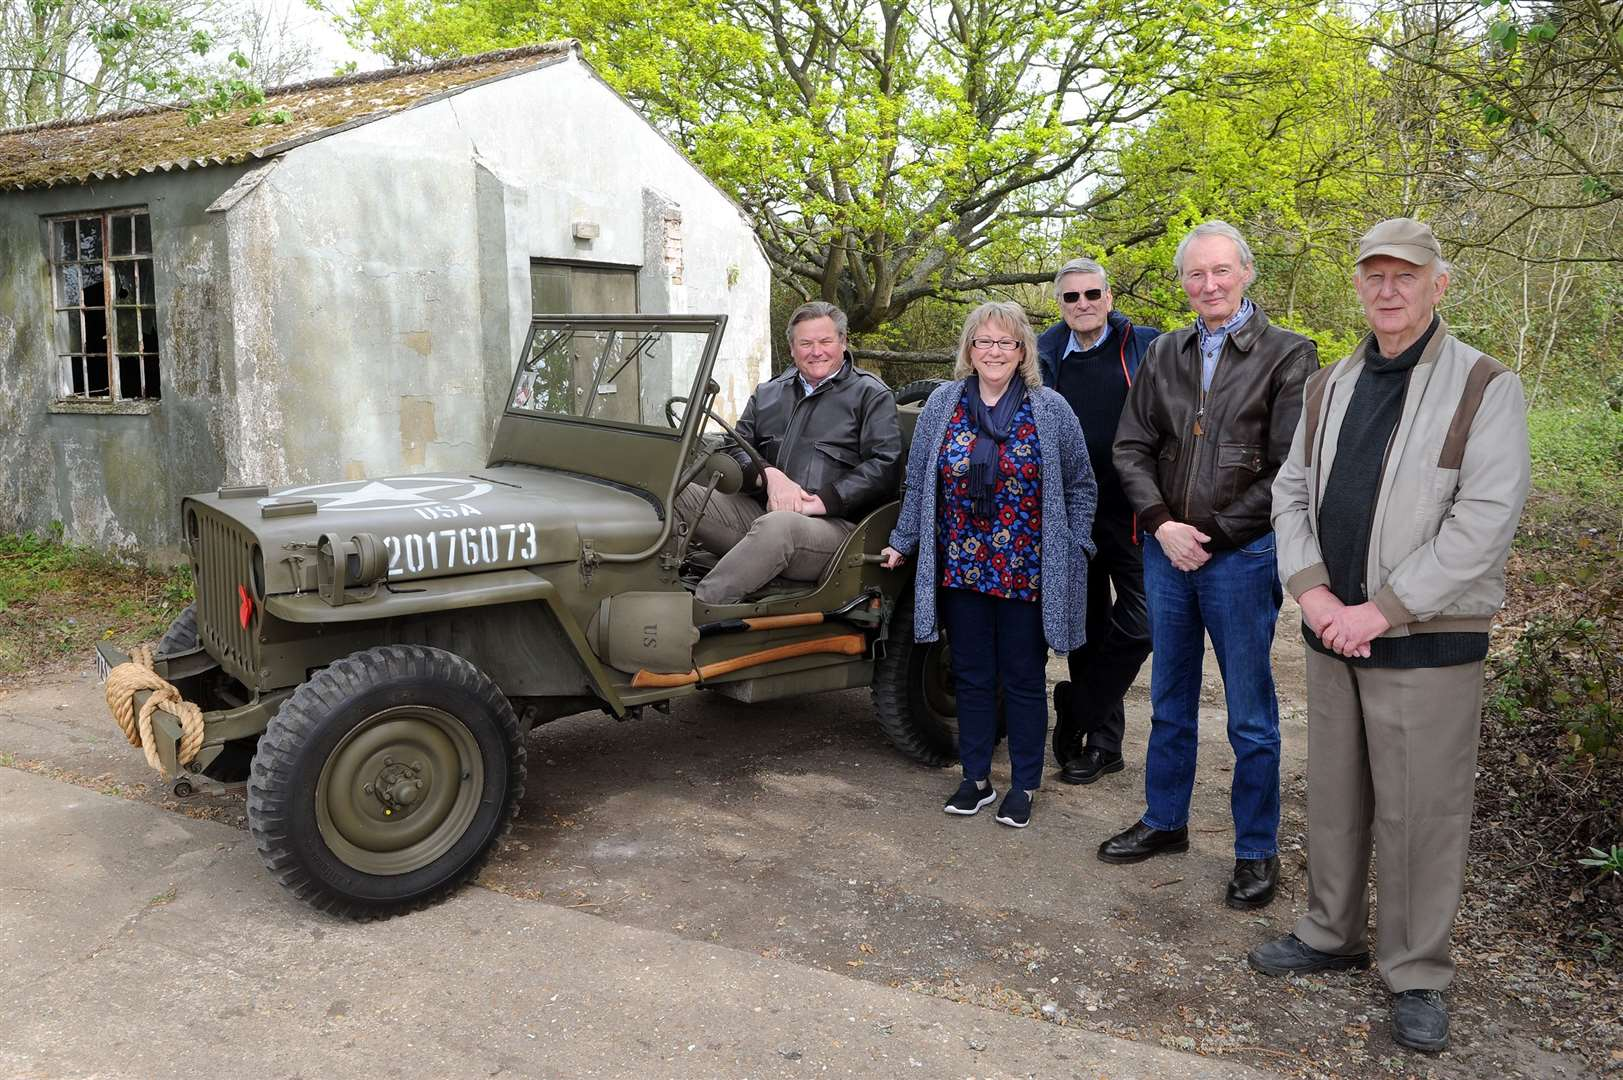 Lavenham Airfield Walks with FOLA (Friends of Lavenham Airfield)..Pictured: Dennis Duffy, Jane Gosling, Bryan Panton, John Broughton and John Cashmere...PICTURE: Mecha Morton.... (19284203)